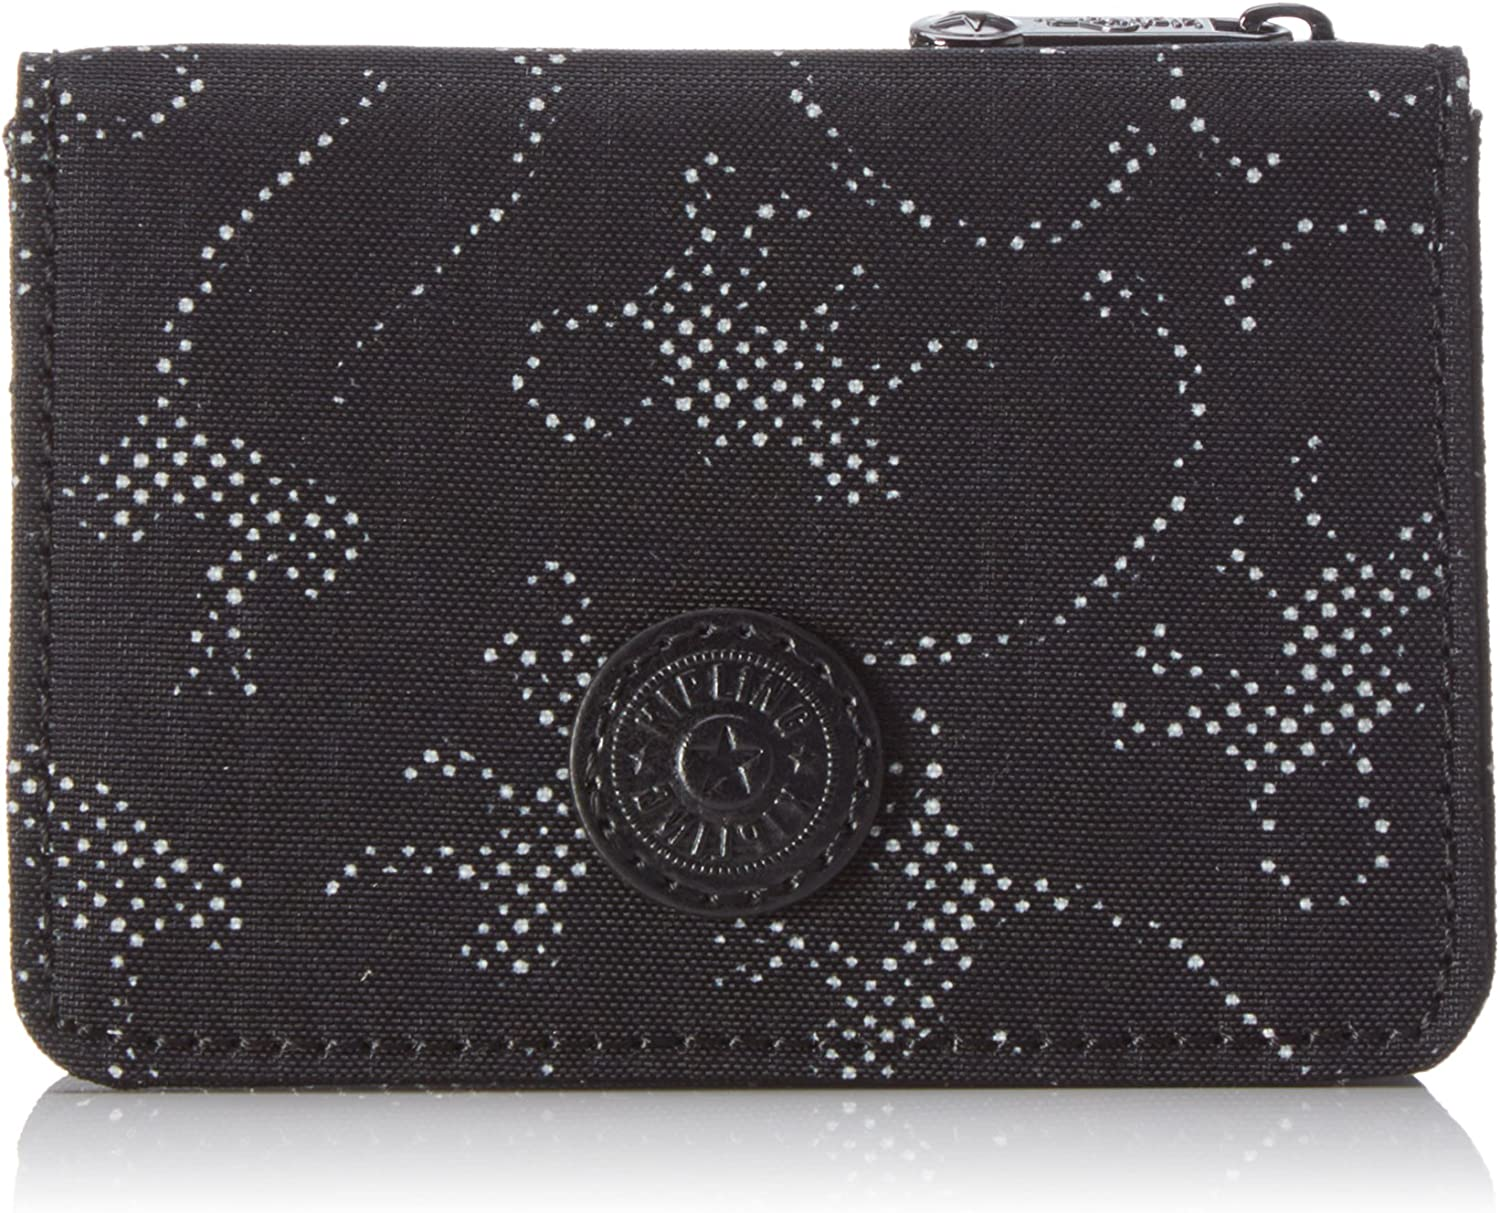 Kipling Alethea Women's Purse